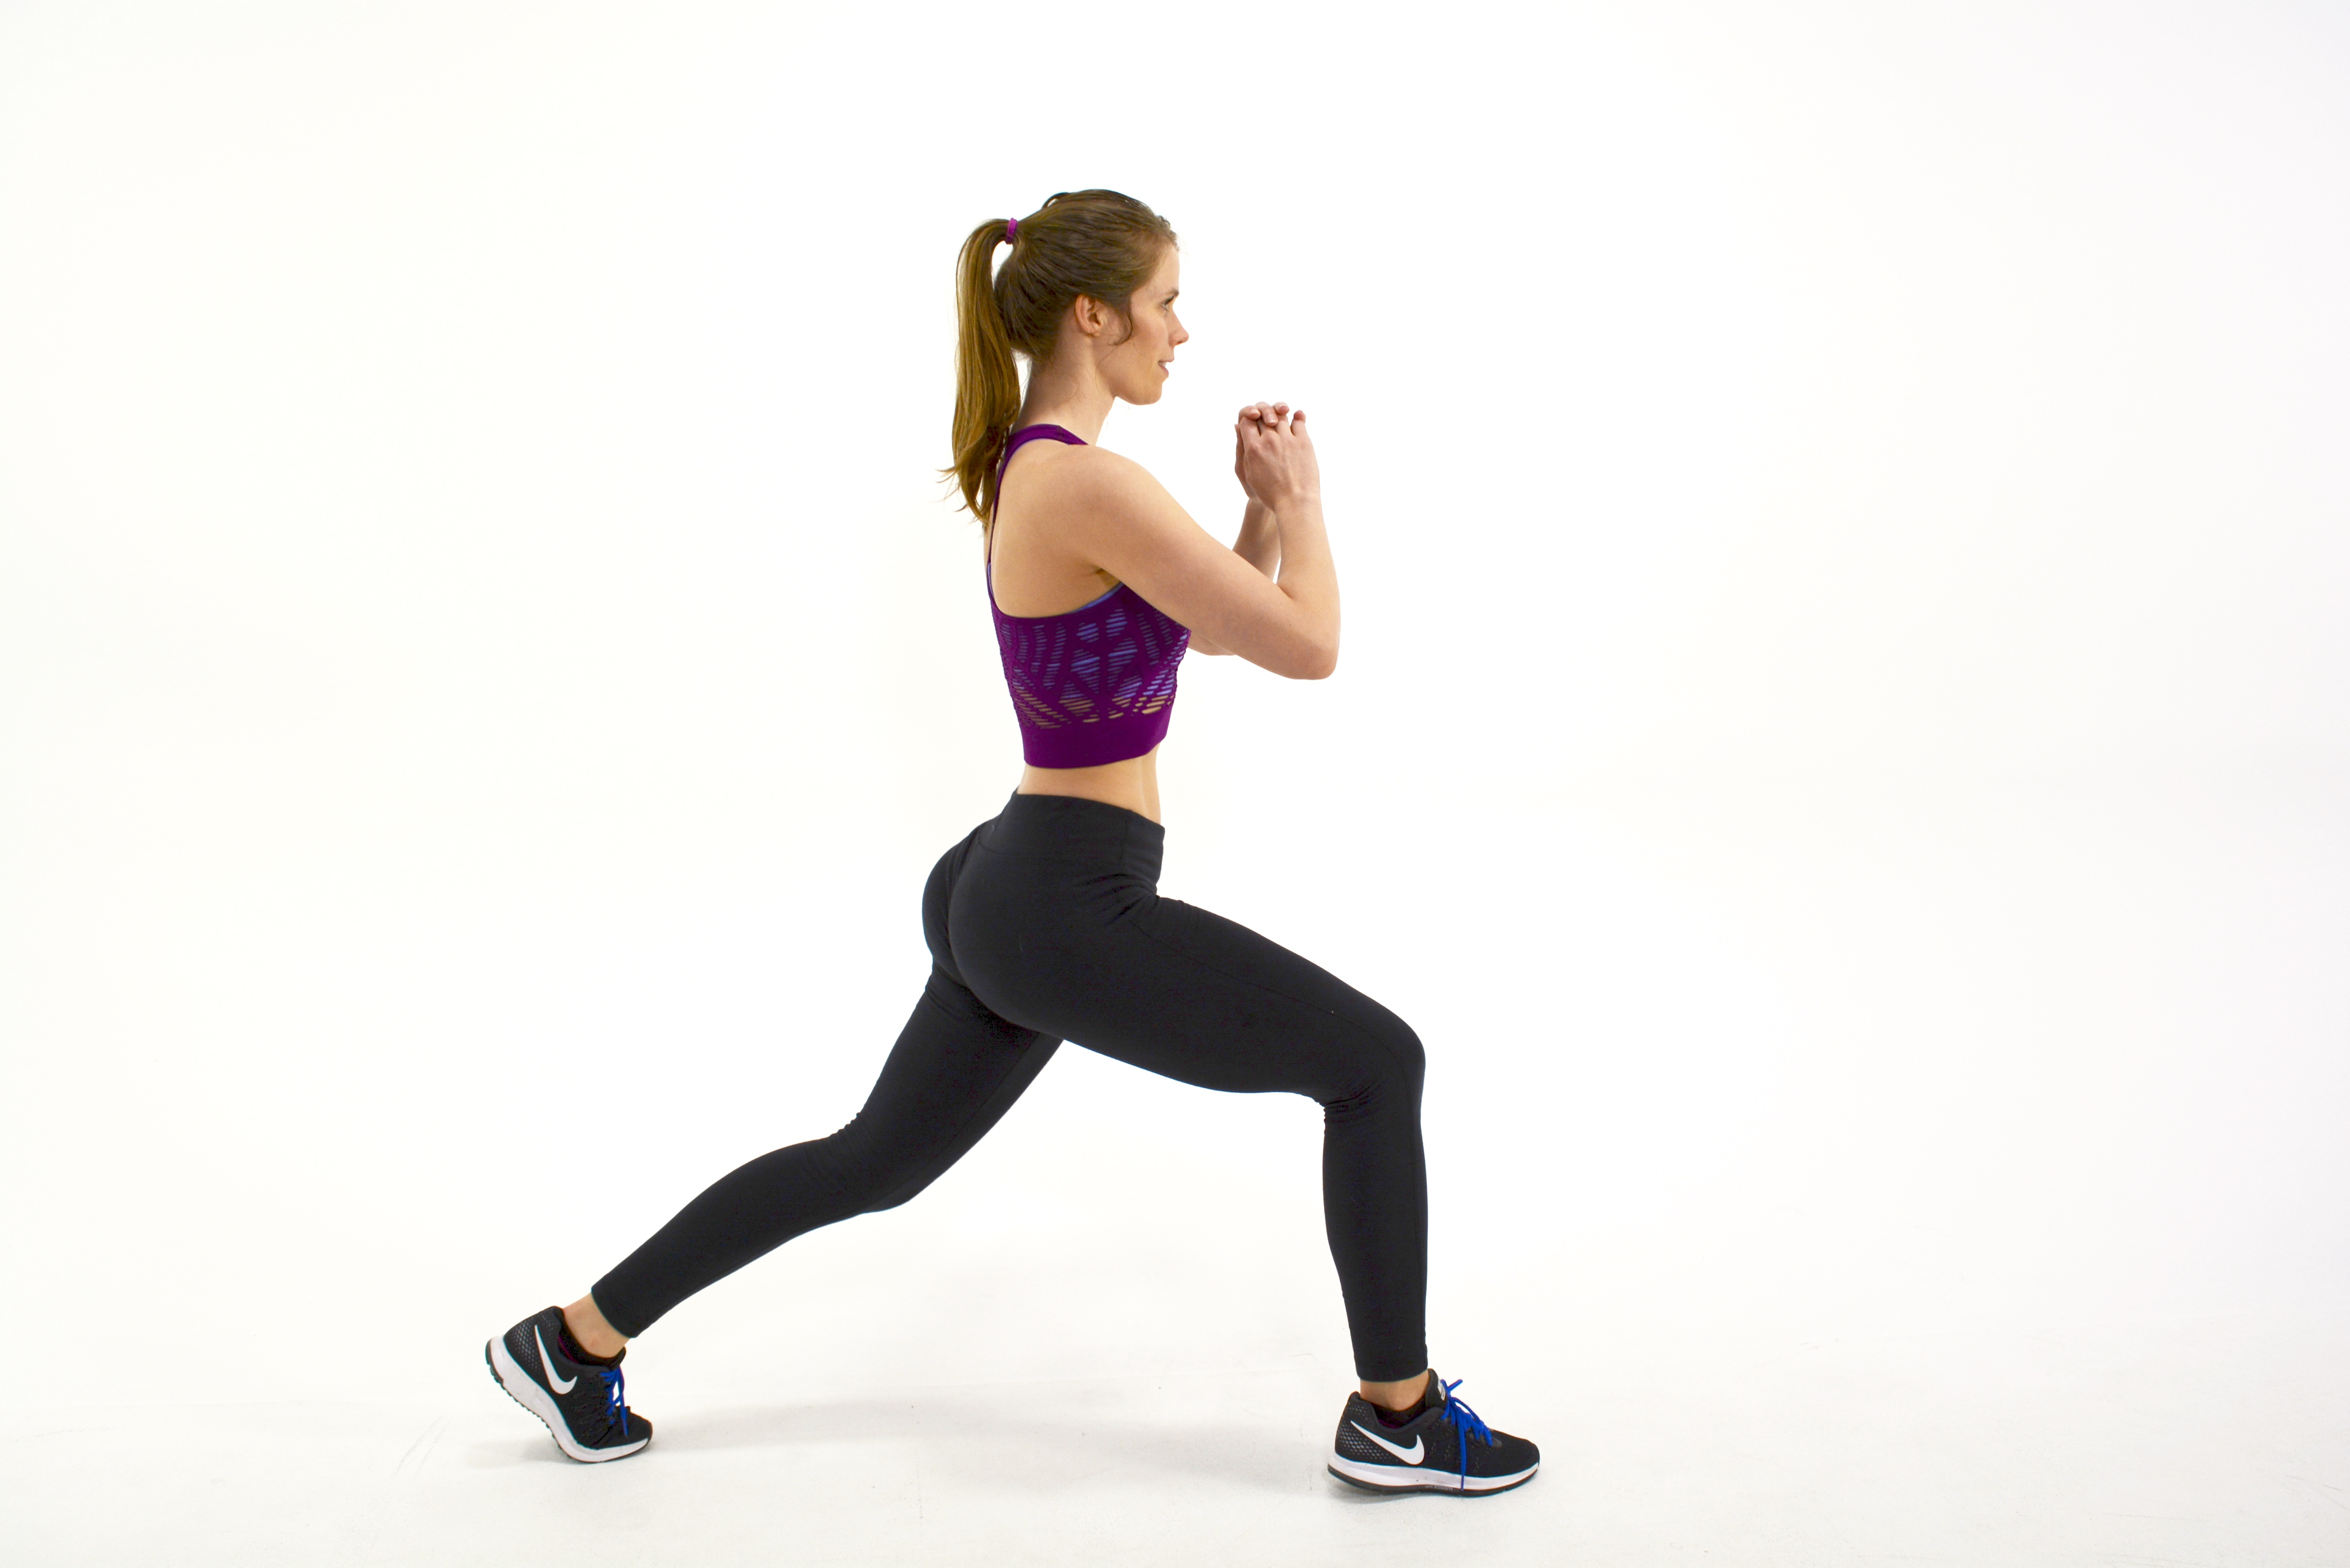 Insanity workout video online free